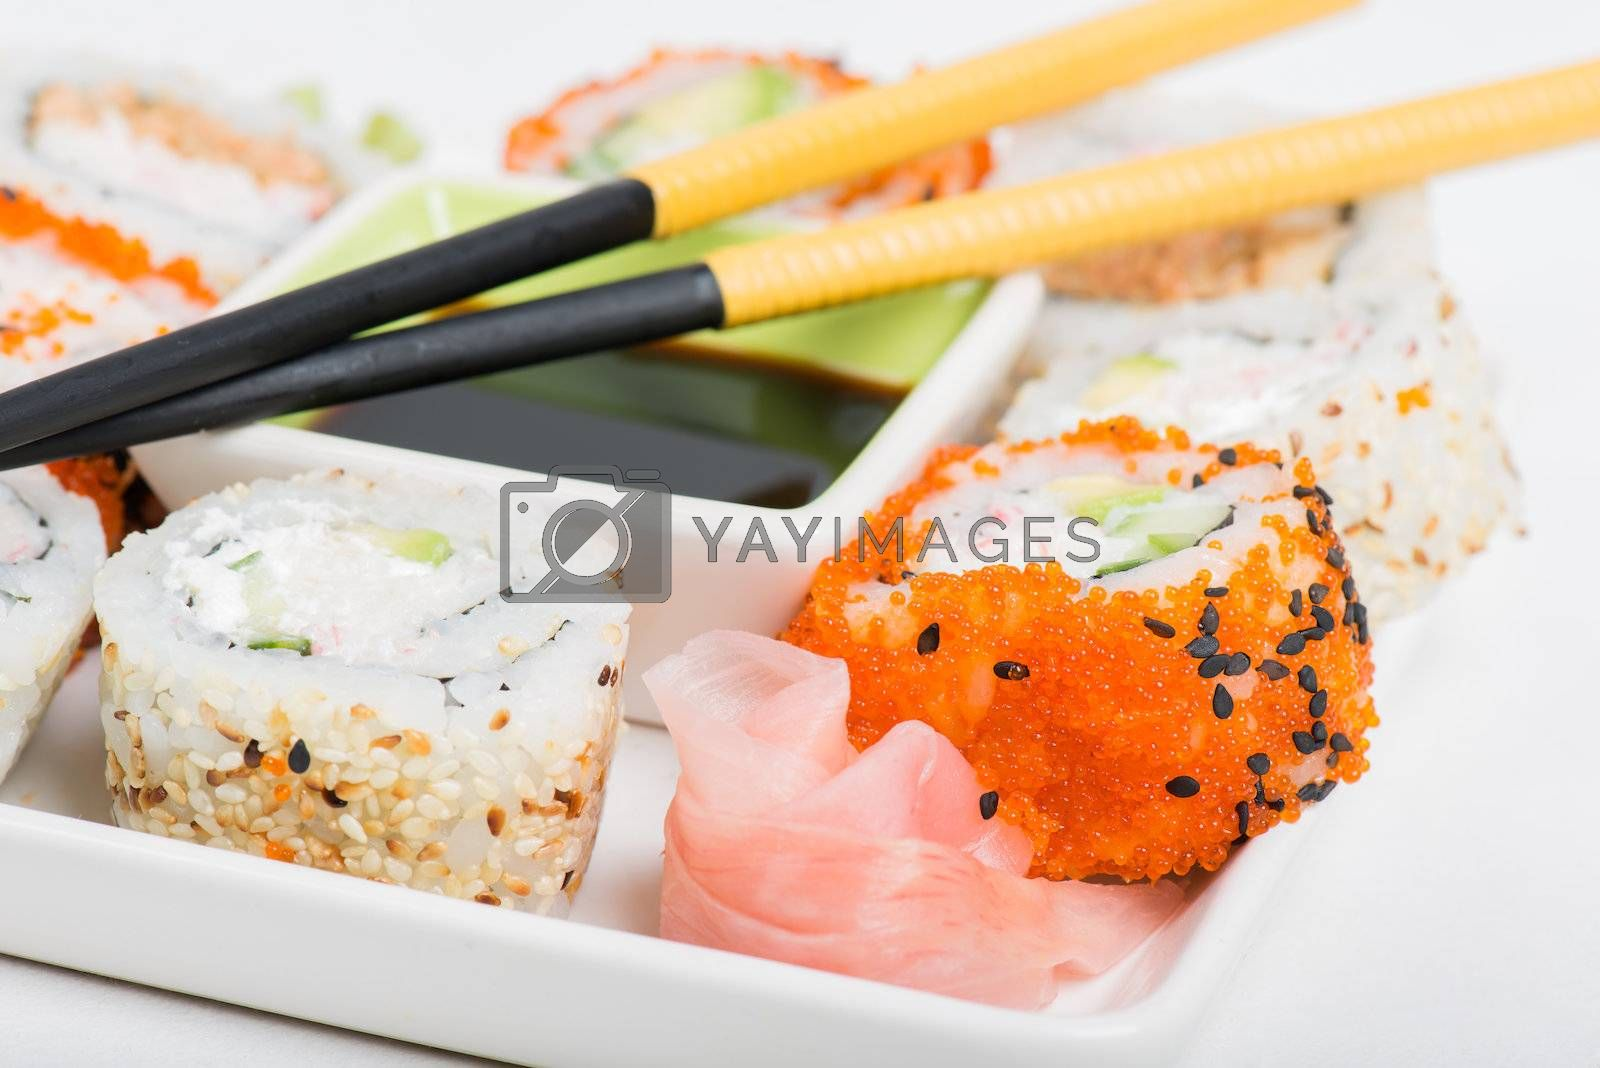 Soy sauce, chopsticks and sushi mix on the plate